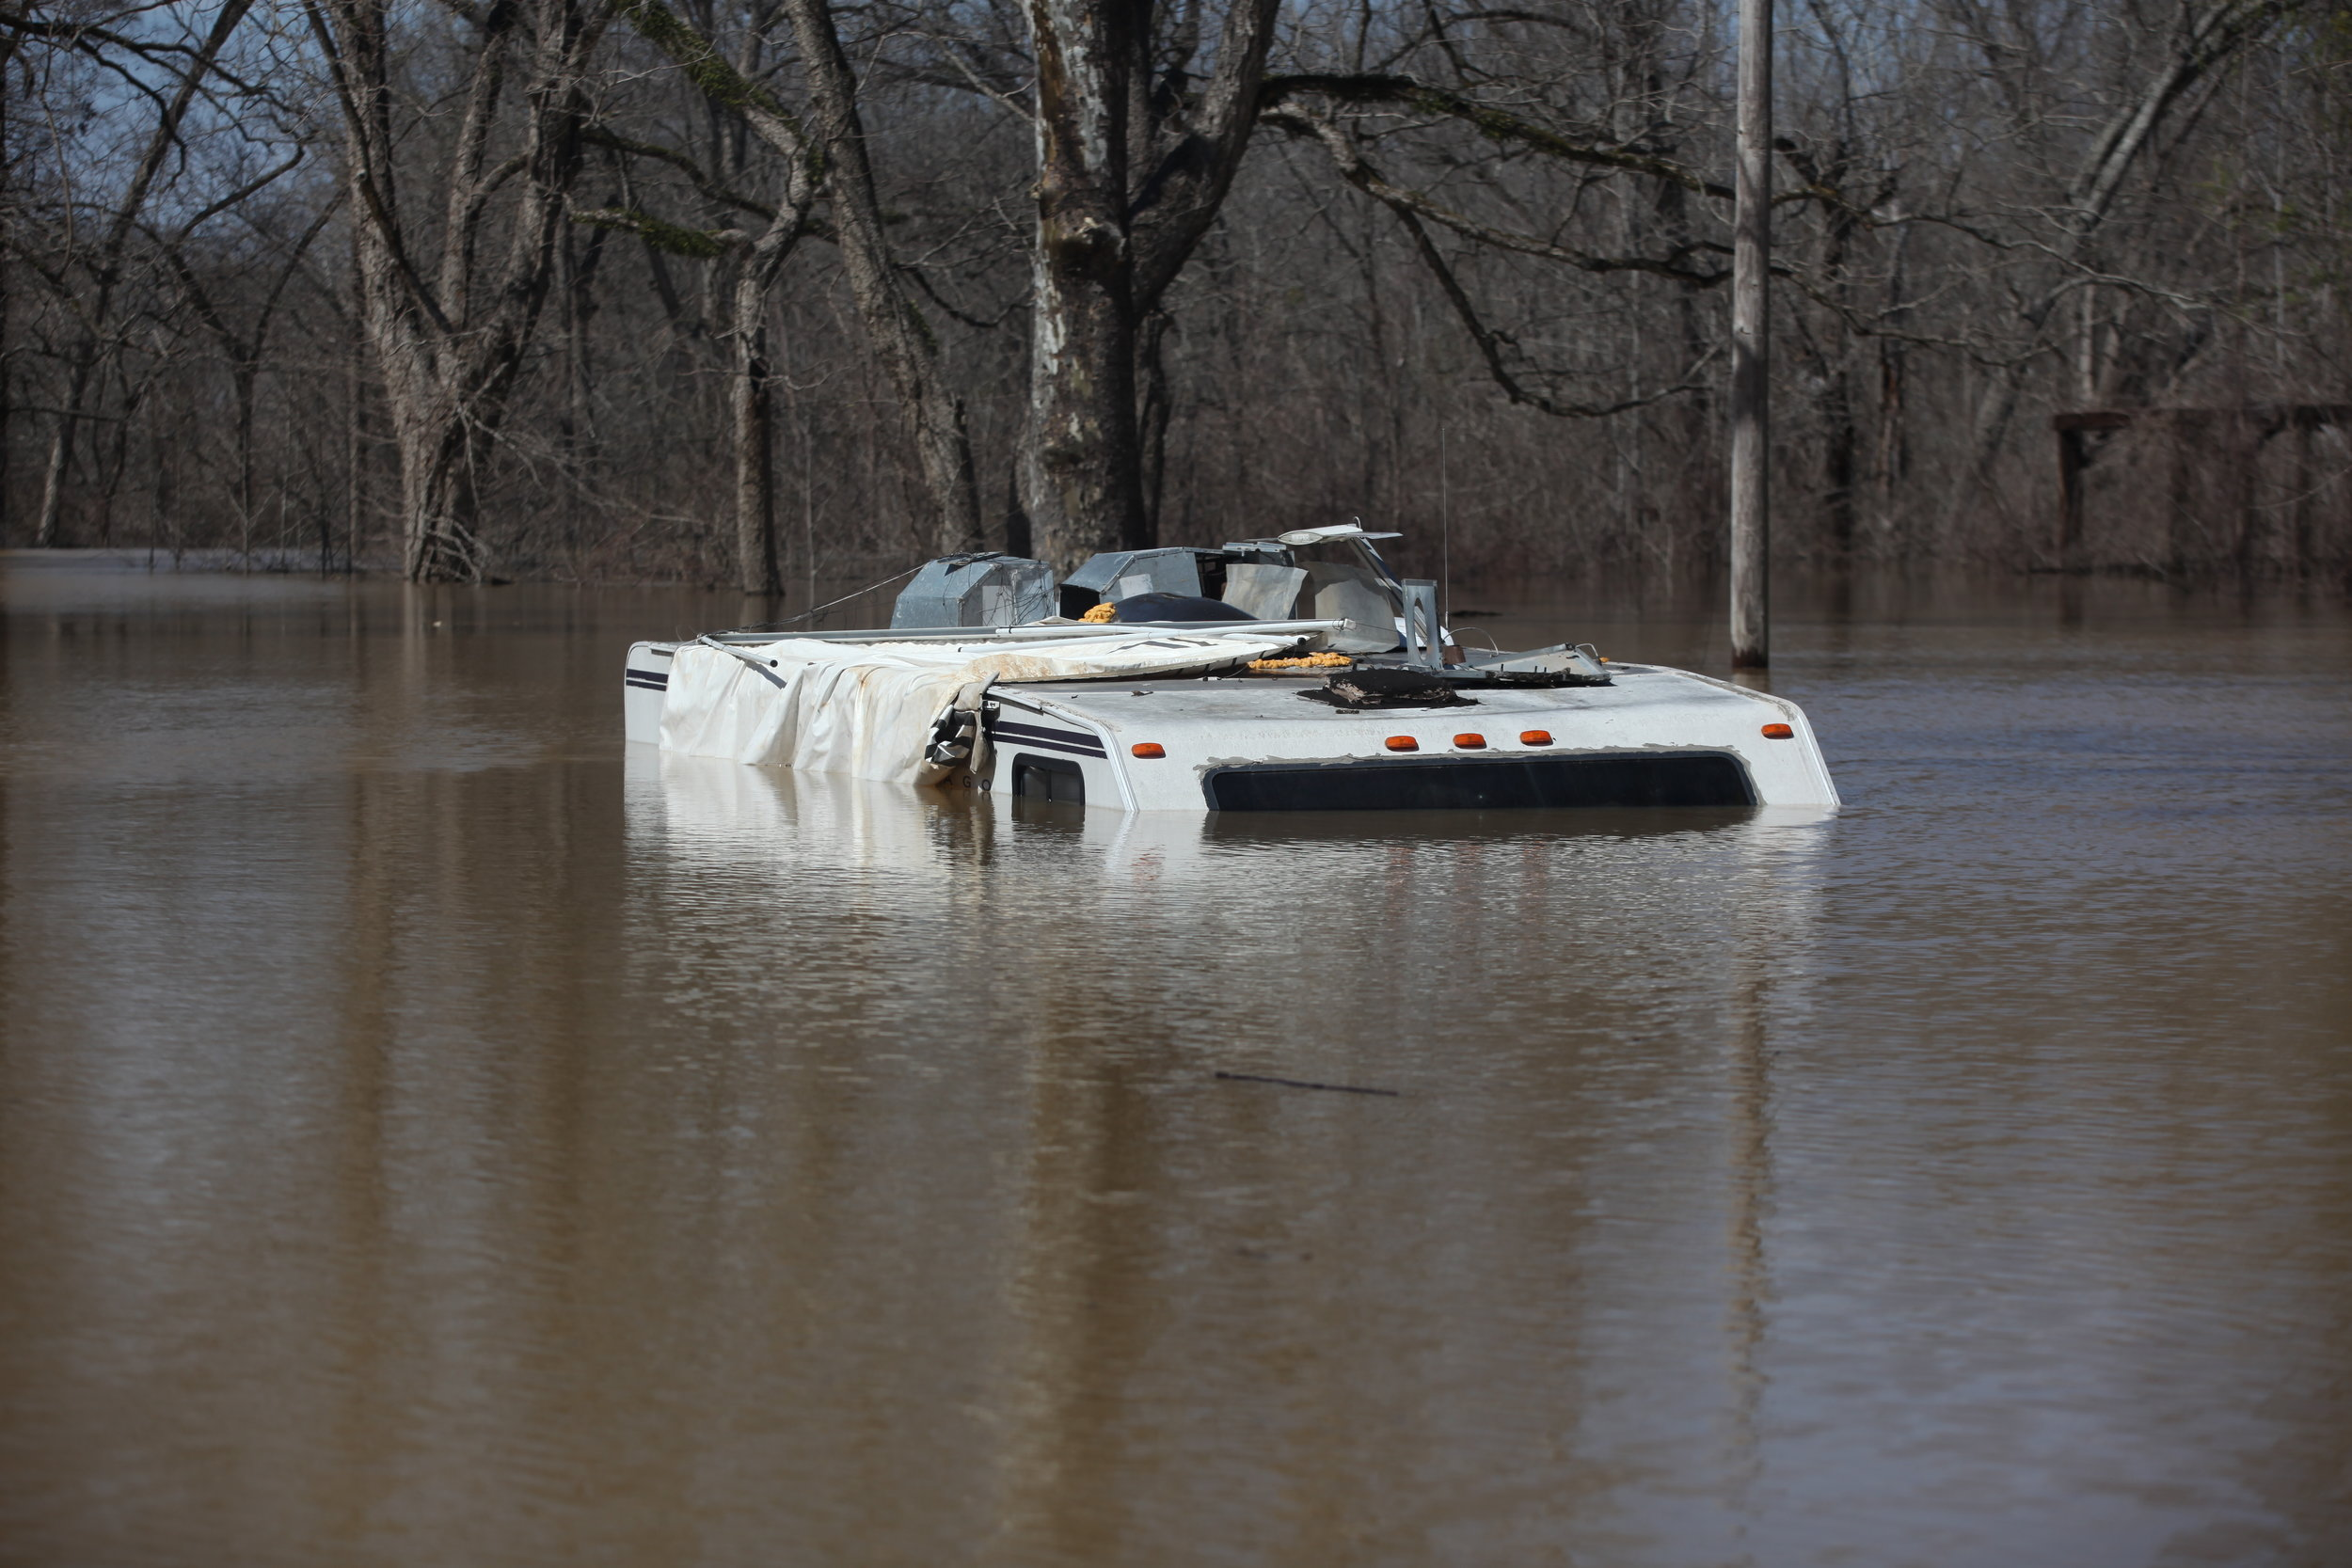 A camper on Chickasaw Road is seen inundated by floodwaters in Vicksburg, Miss., Tuesday, March 13, 2018. (Courtland Wells/The Vicksburg Post, via AP)